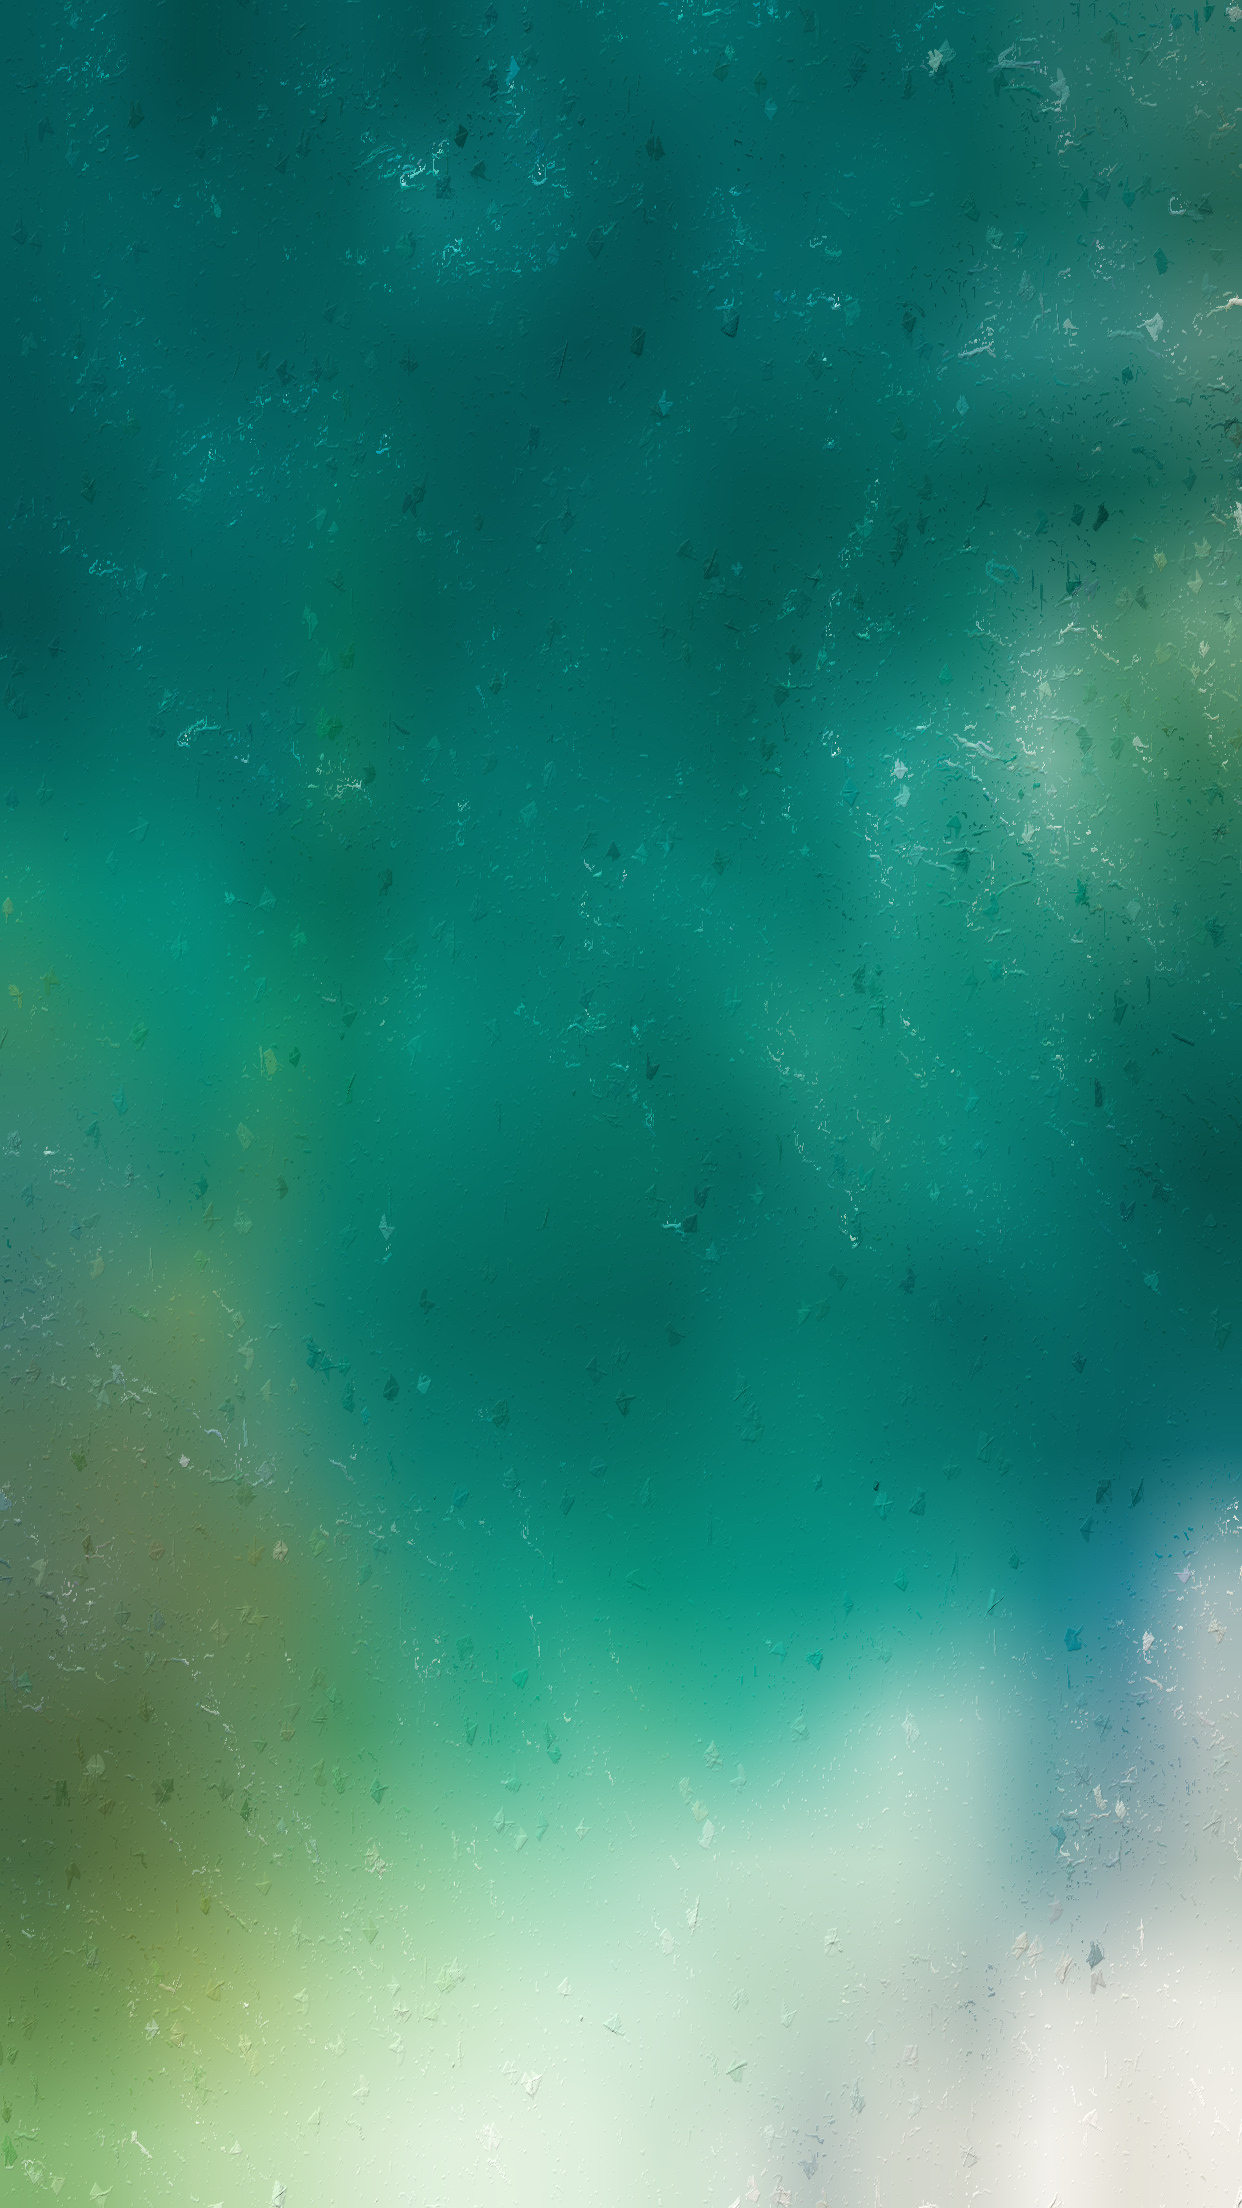 Wallpapers inspired by iOS 10 and the new Home app 1242x2208